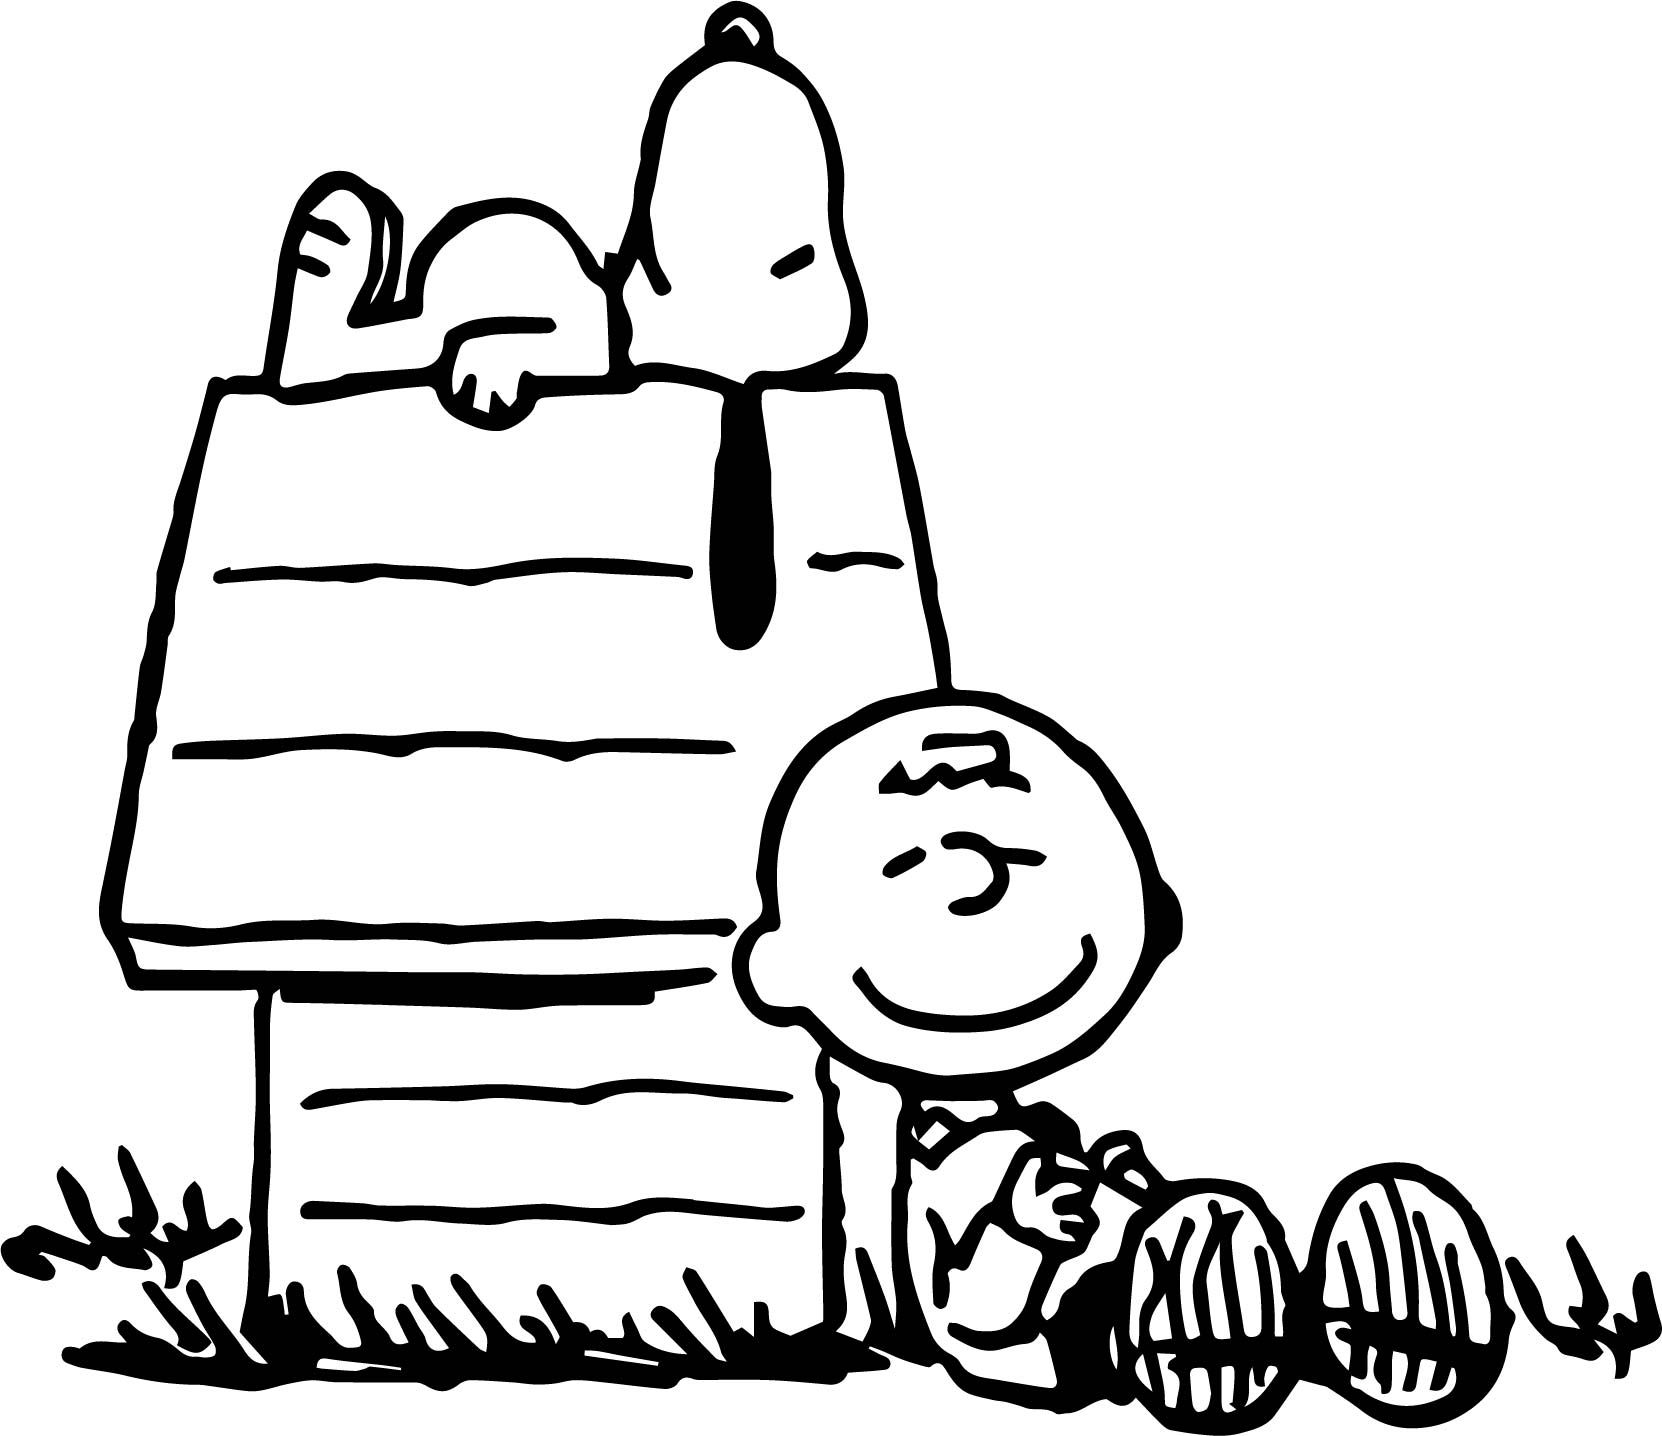 Nice snoopy charlie brown peanuts coloring pages rithym u books